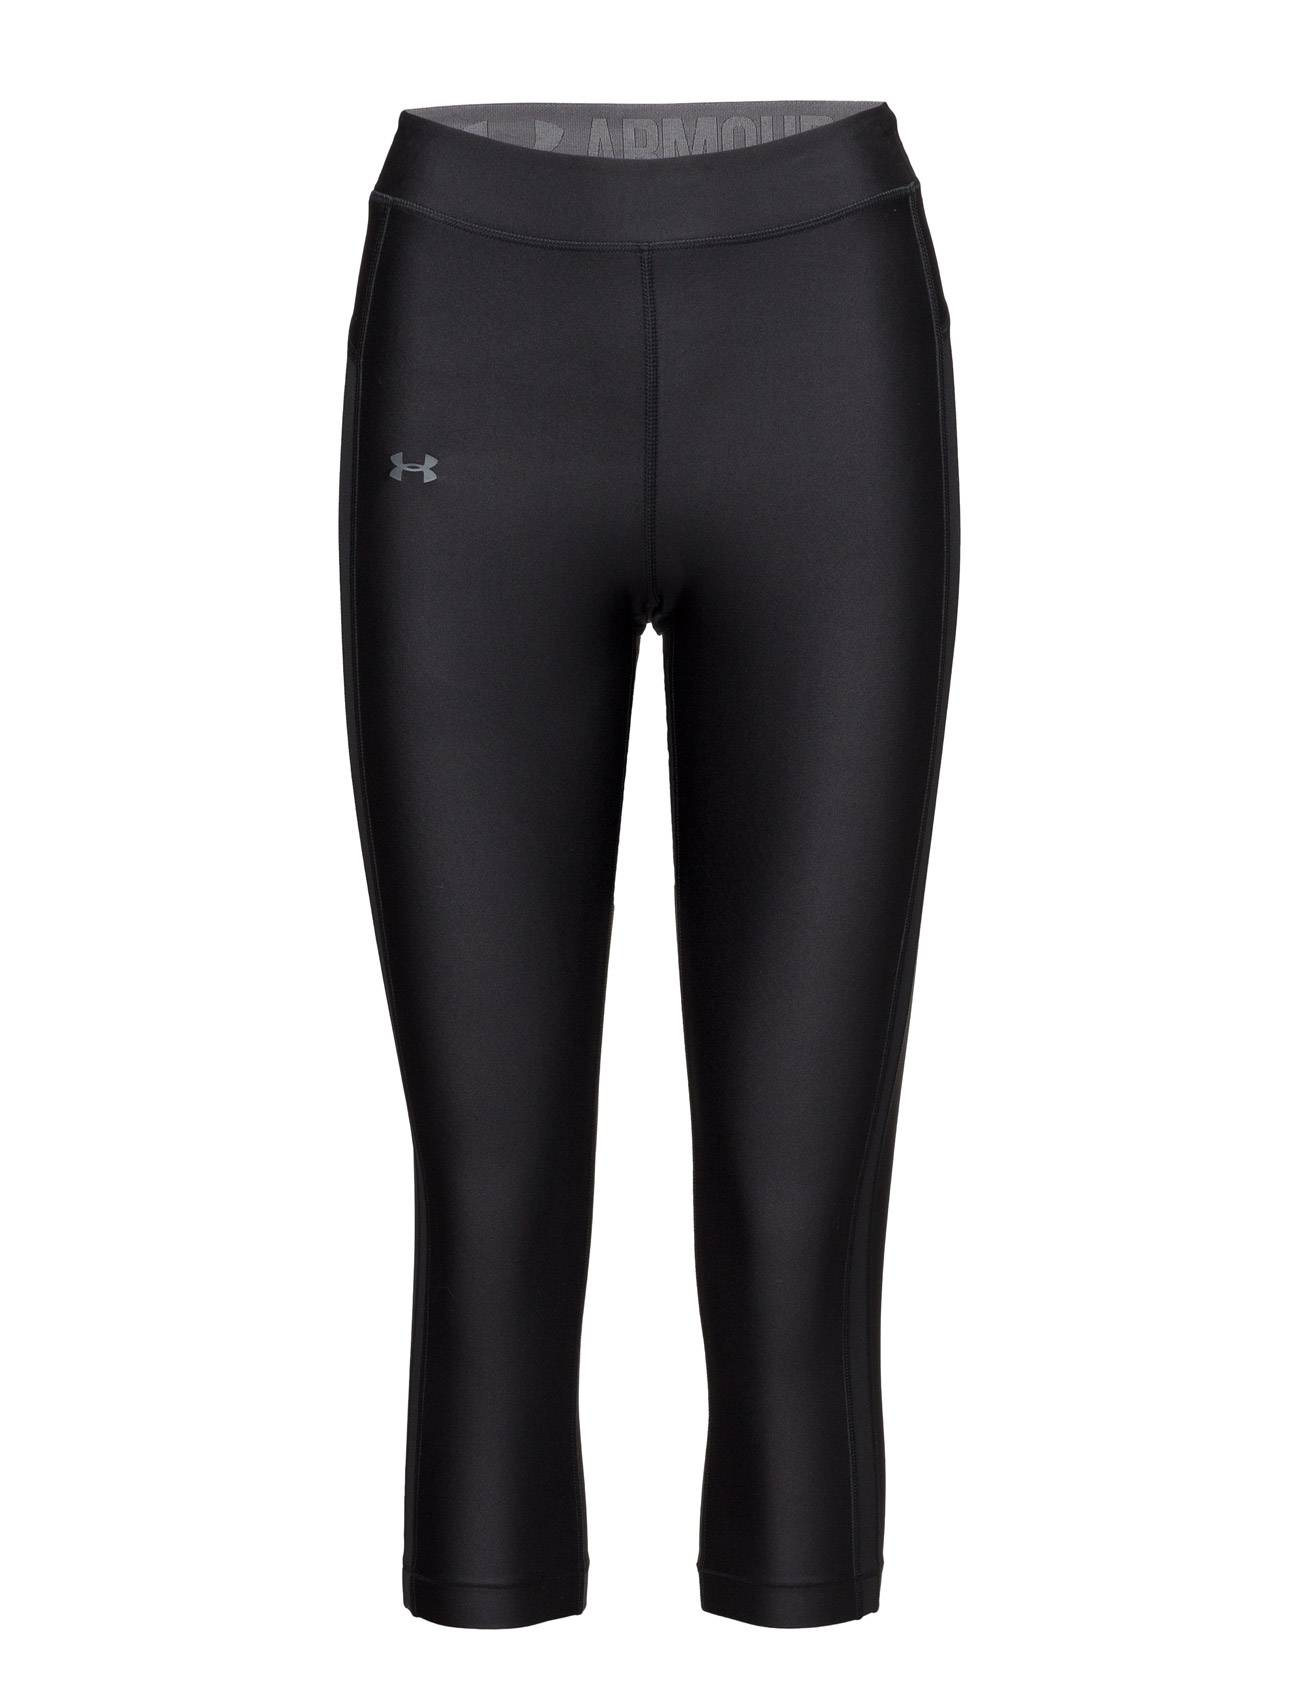 Under Armour Ua Hg Armr Coolswitch Capri